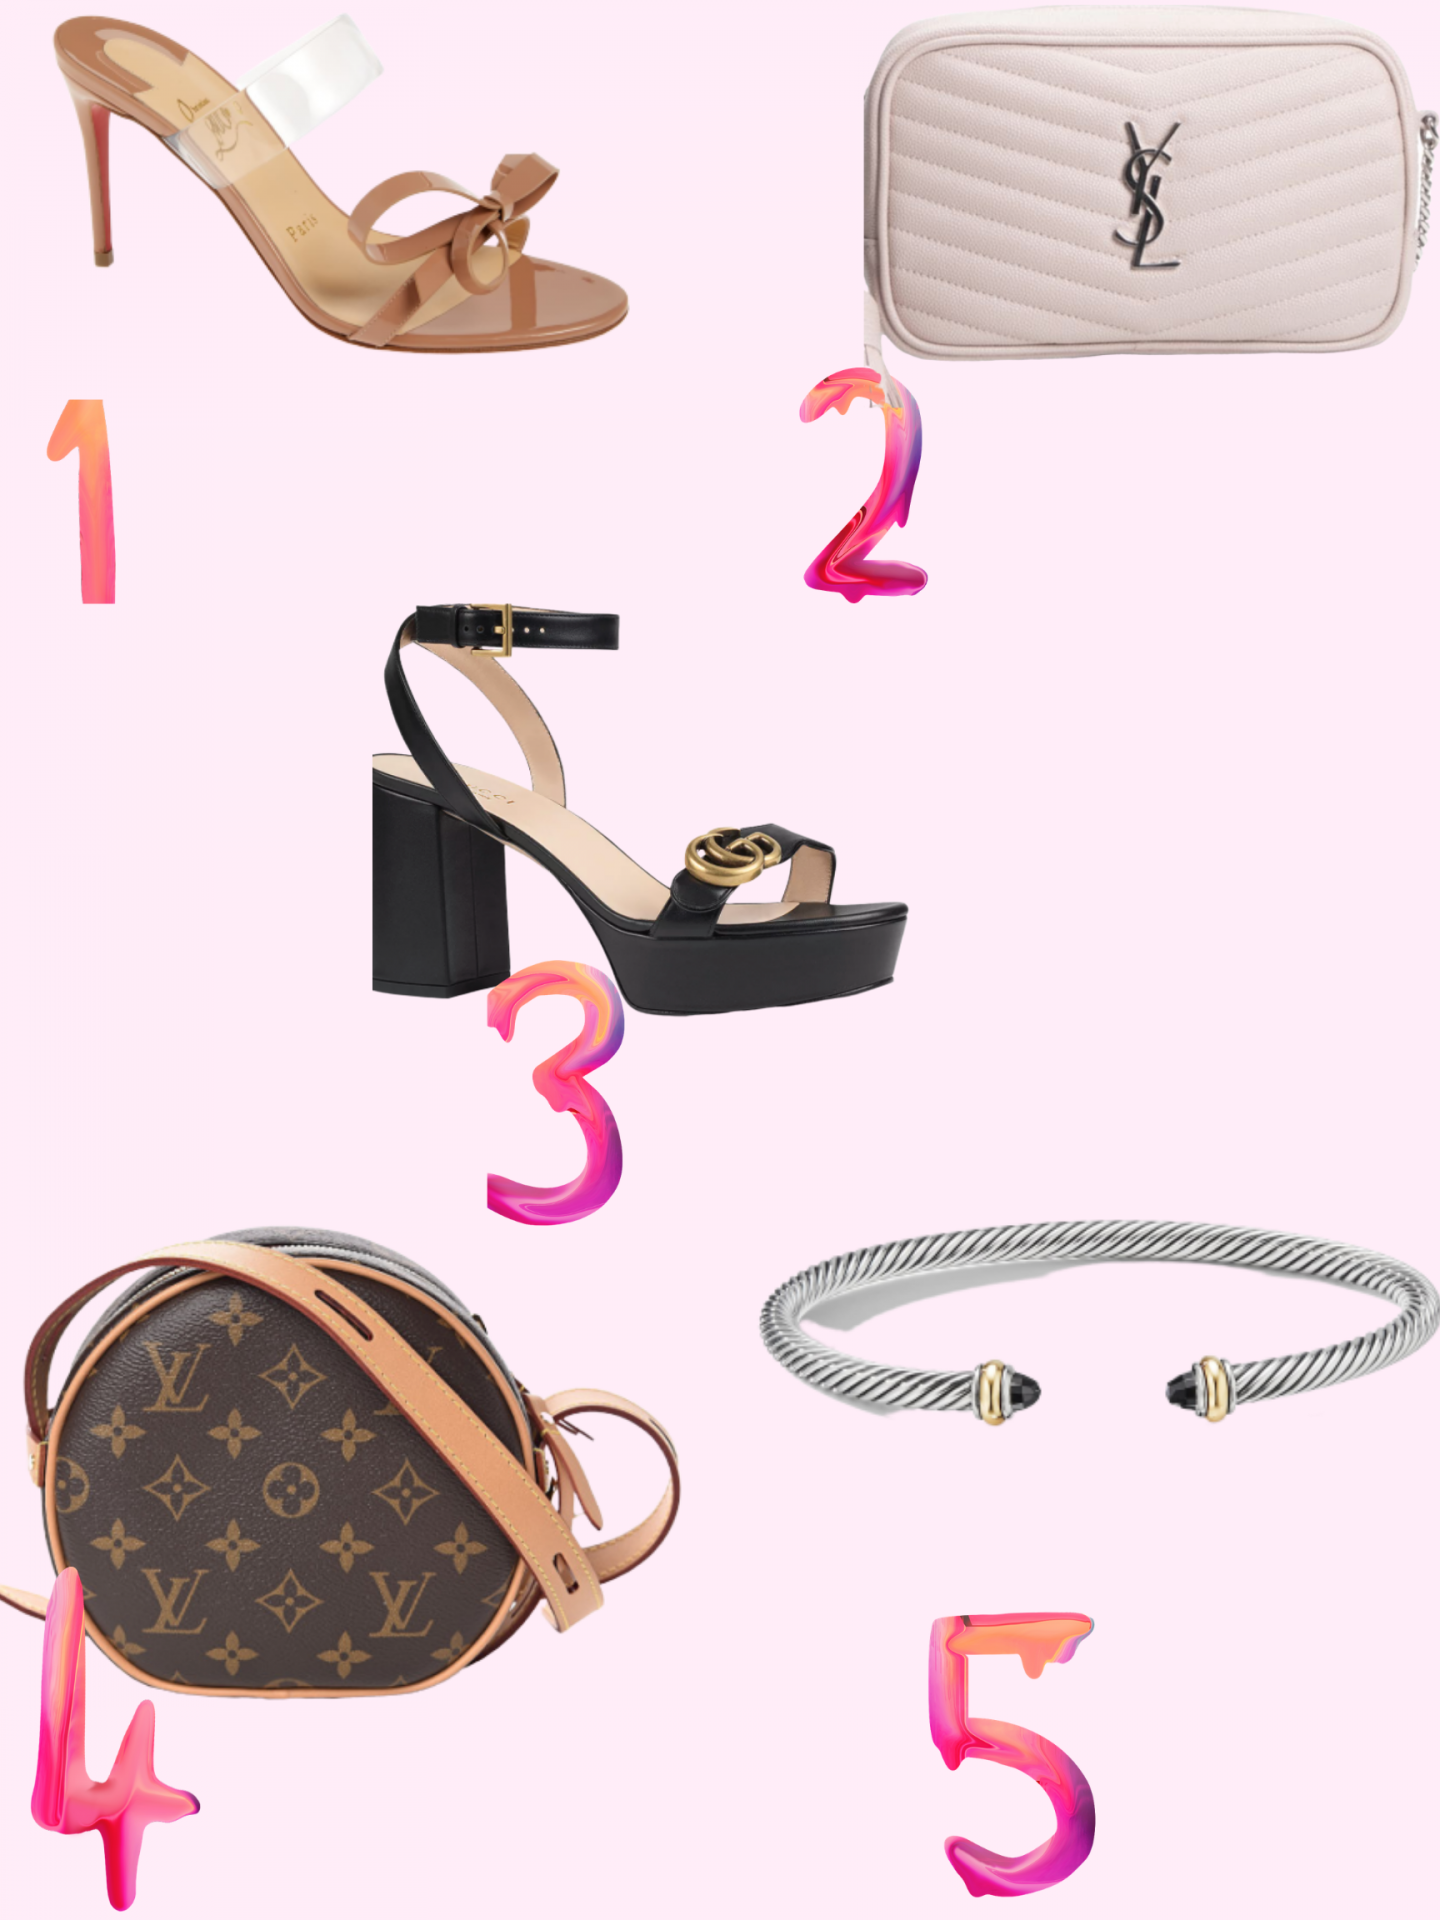 Luxury Items On My Wishlist